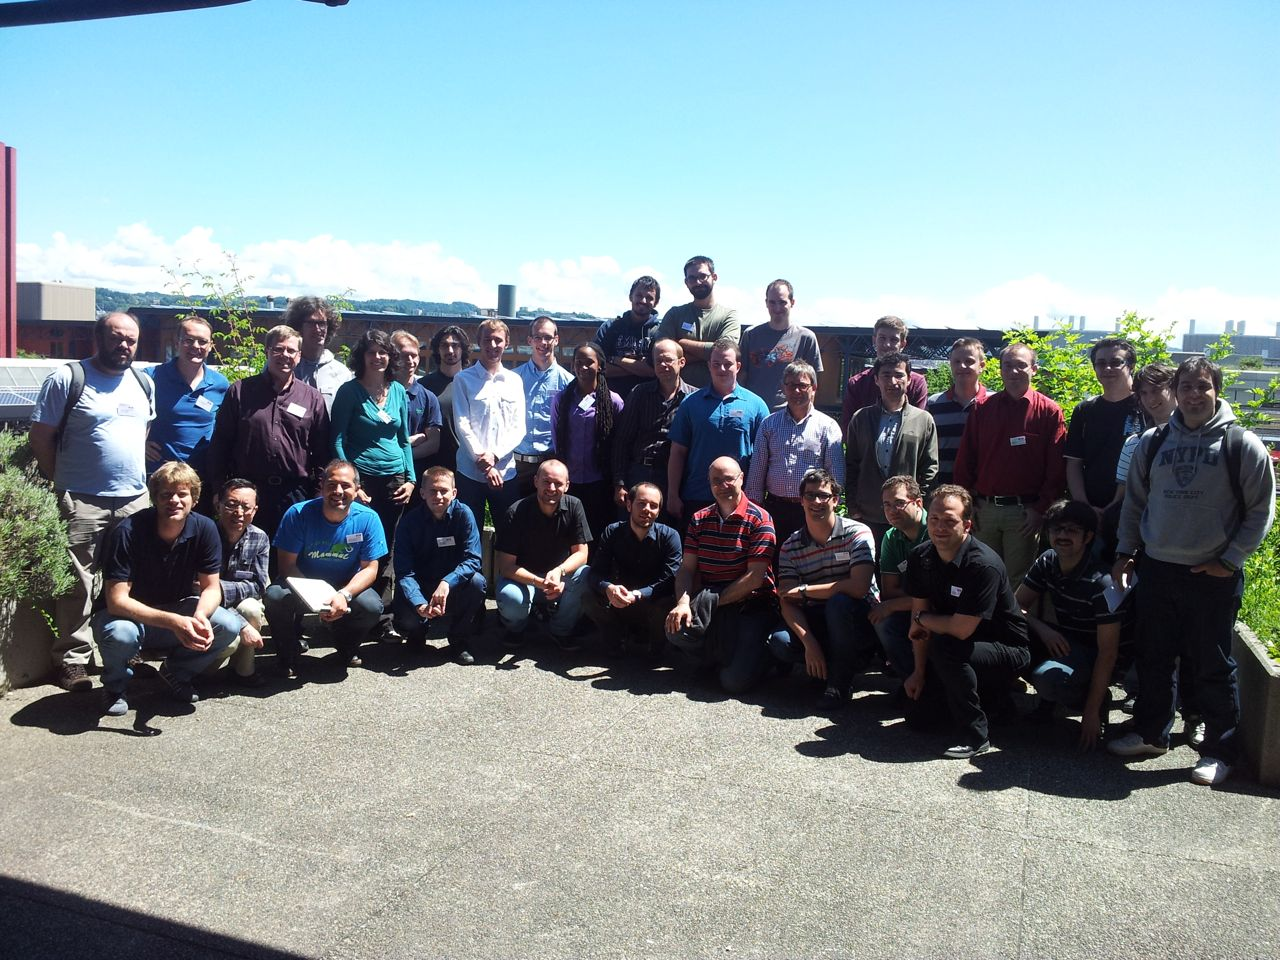 Photo of EuroTUG 2012 participants